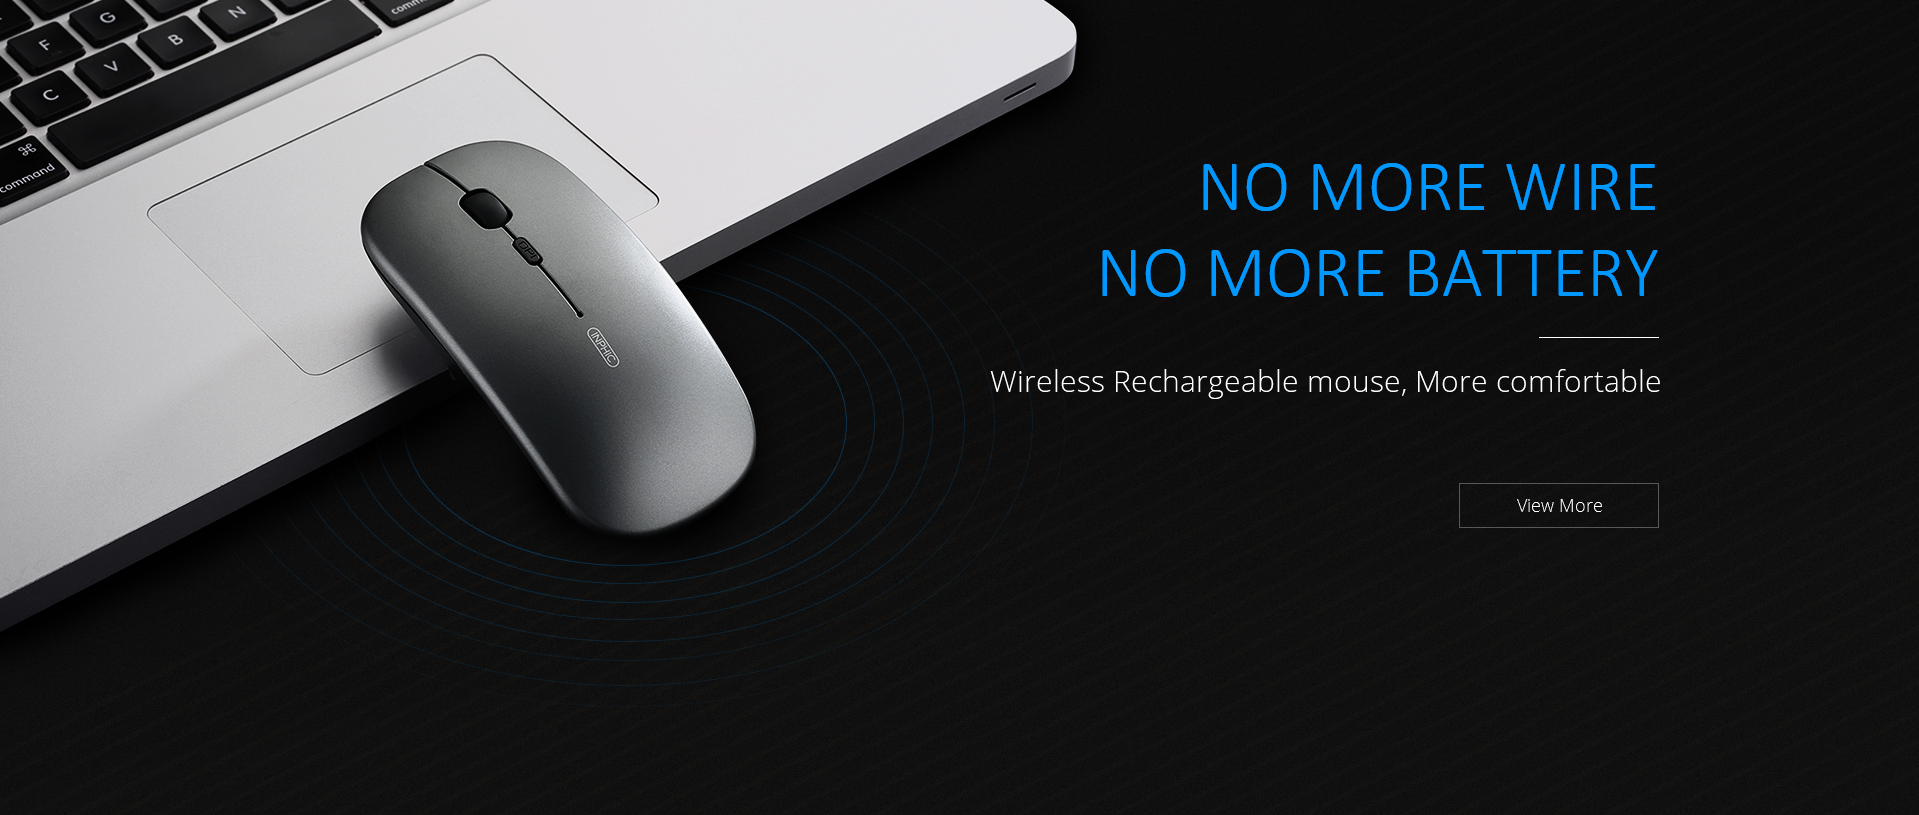 inphic PM-1 2.4G wireless mouse with rechrageable function